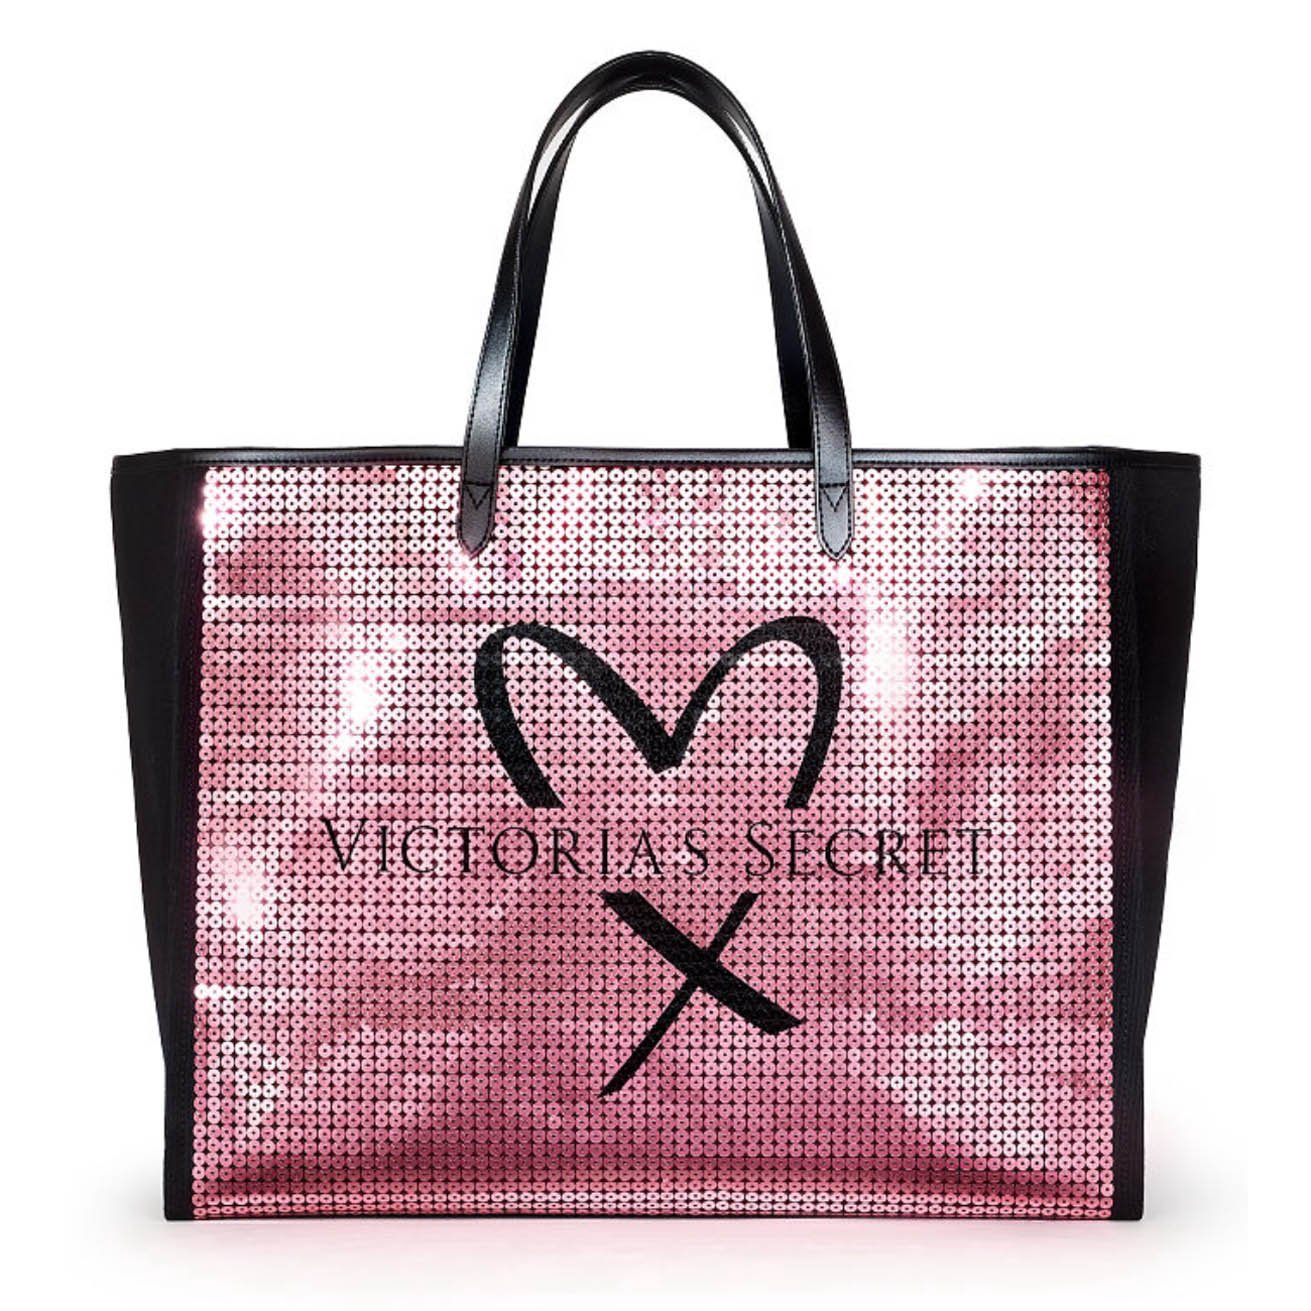 How To Make A Book Cover Out Of A Victoria S Secret Bag ~ Amazon.com: victorias secret pink showstopper sequin bling tote bag